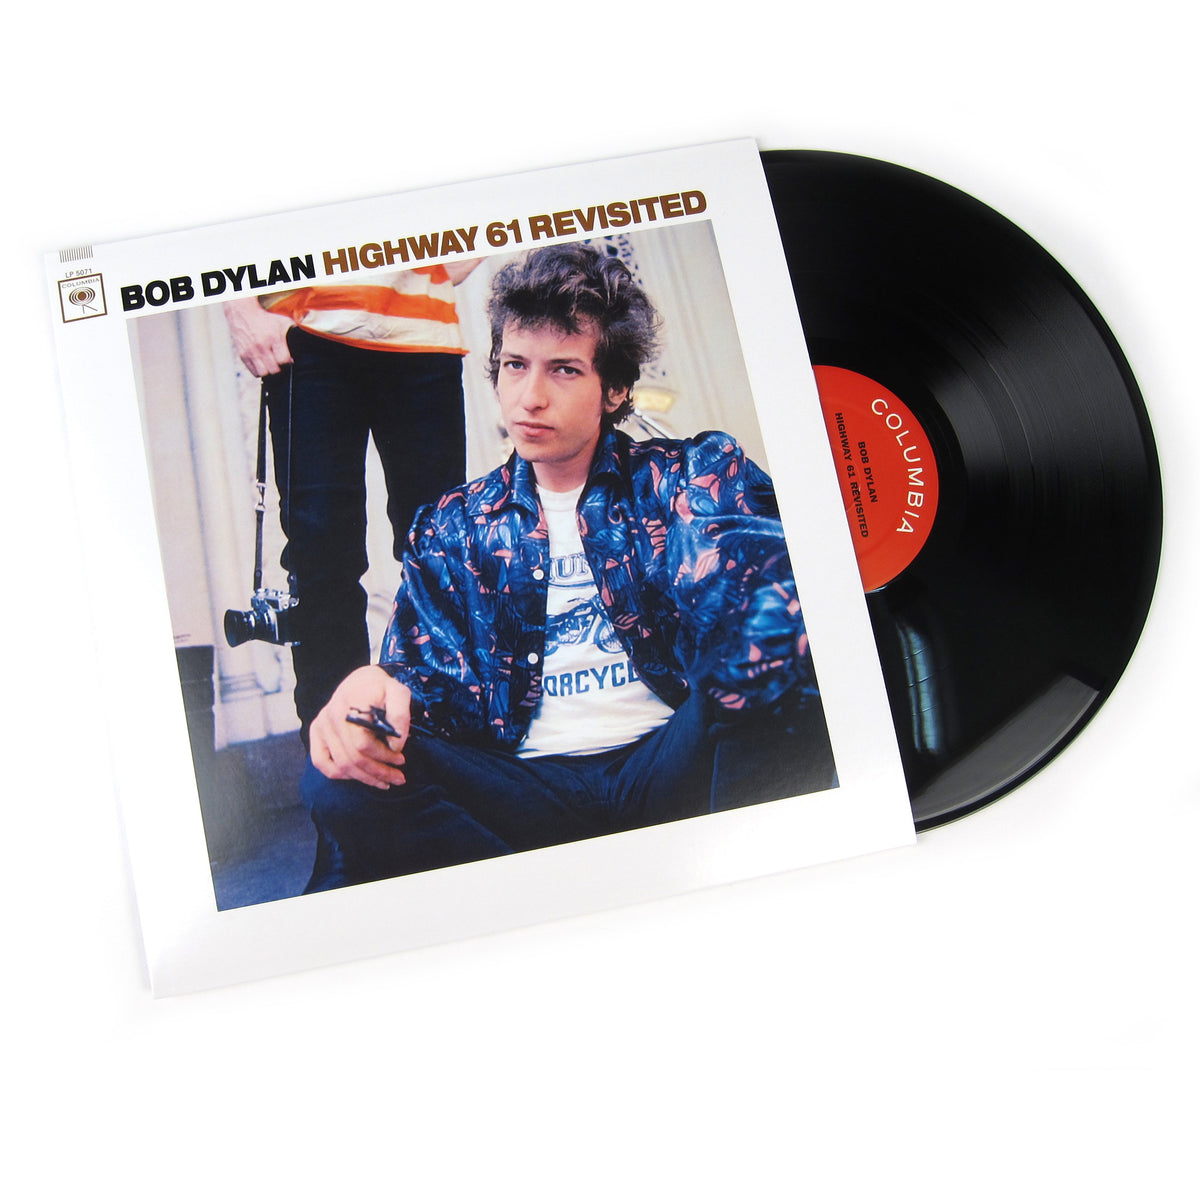 Bob Dylan: Highway 61 Revisited (Mono) Vinyl LP